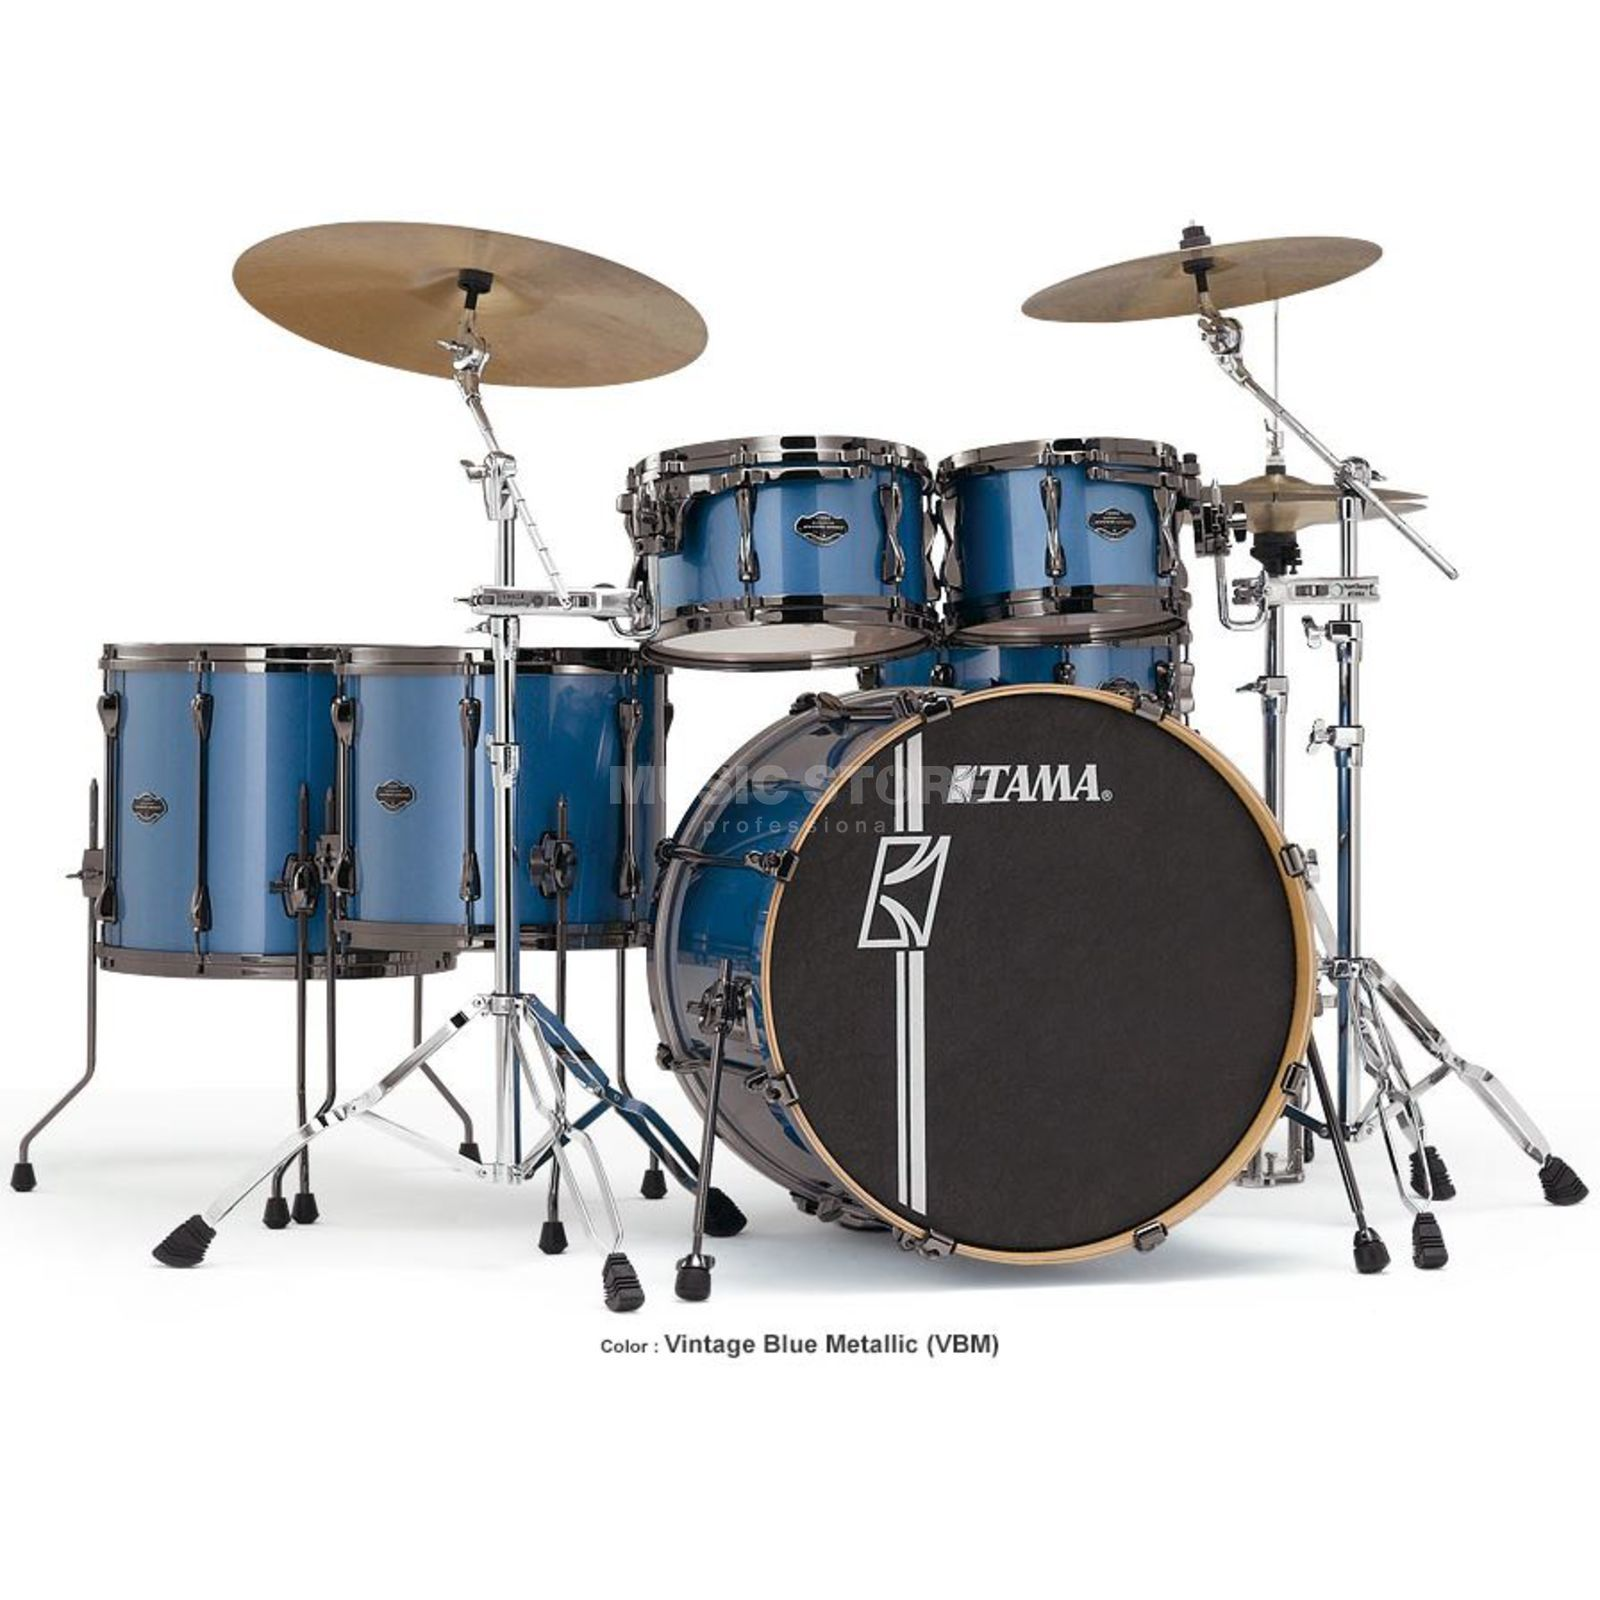 Tama Superstar HD Maple ML52HZBN, Vintage Blue Metallic, VBM Imagem do produto